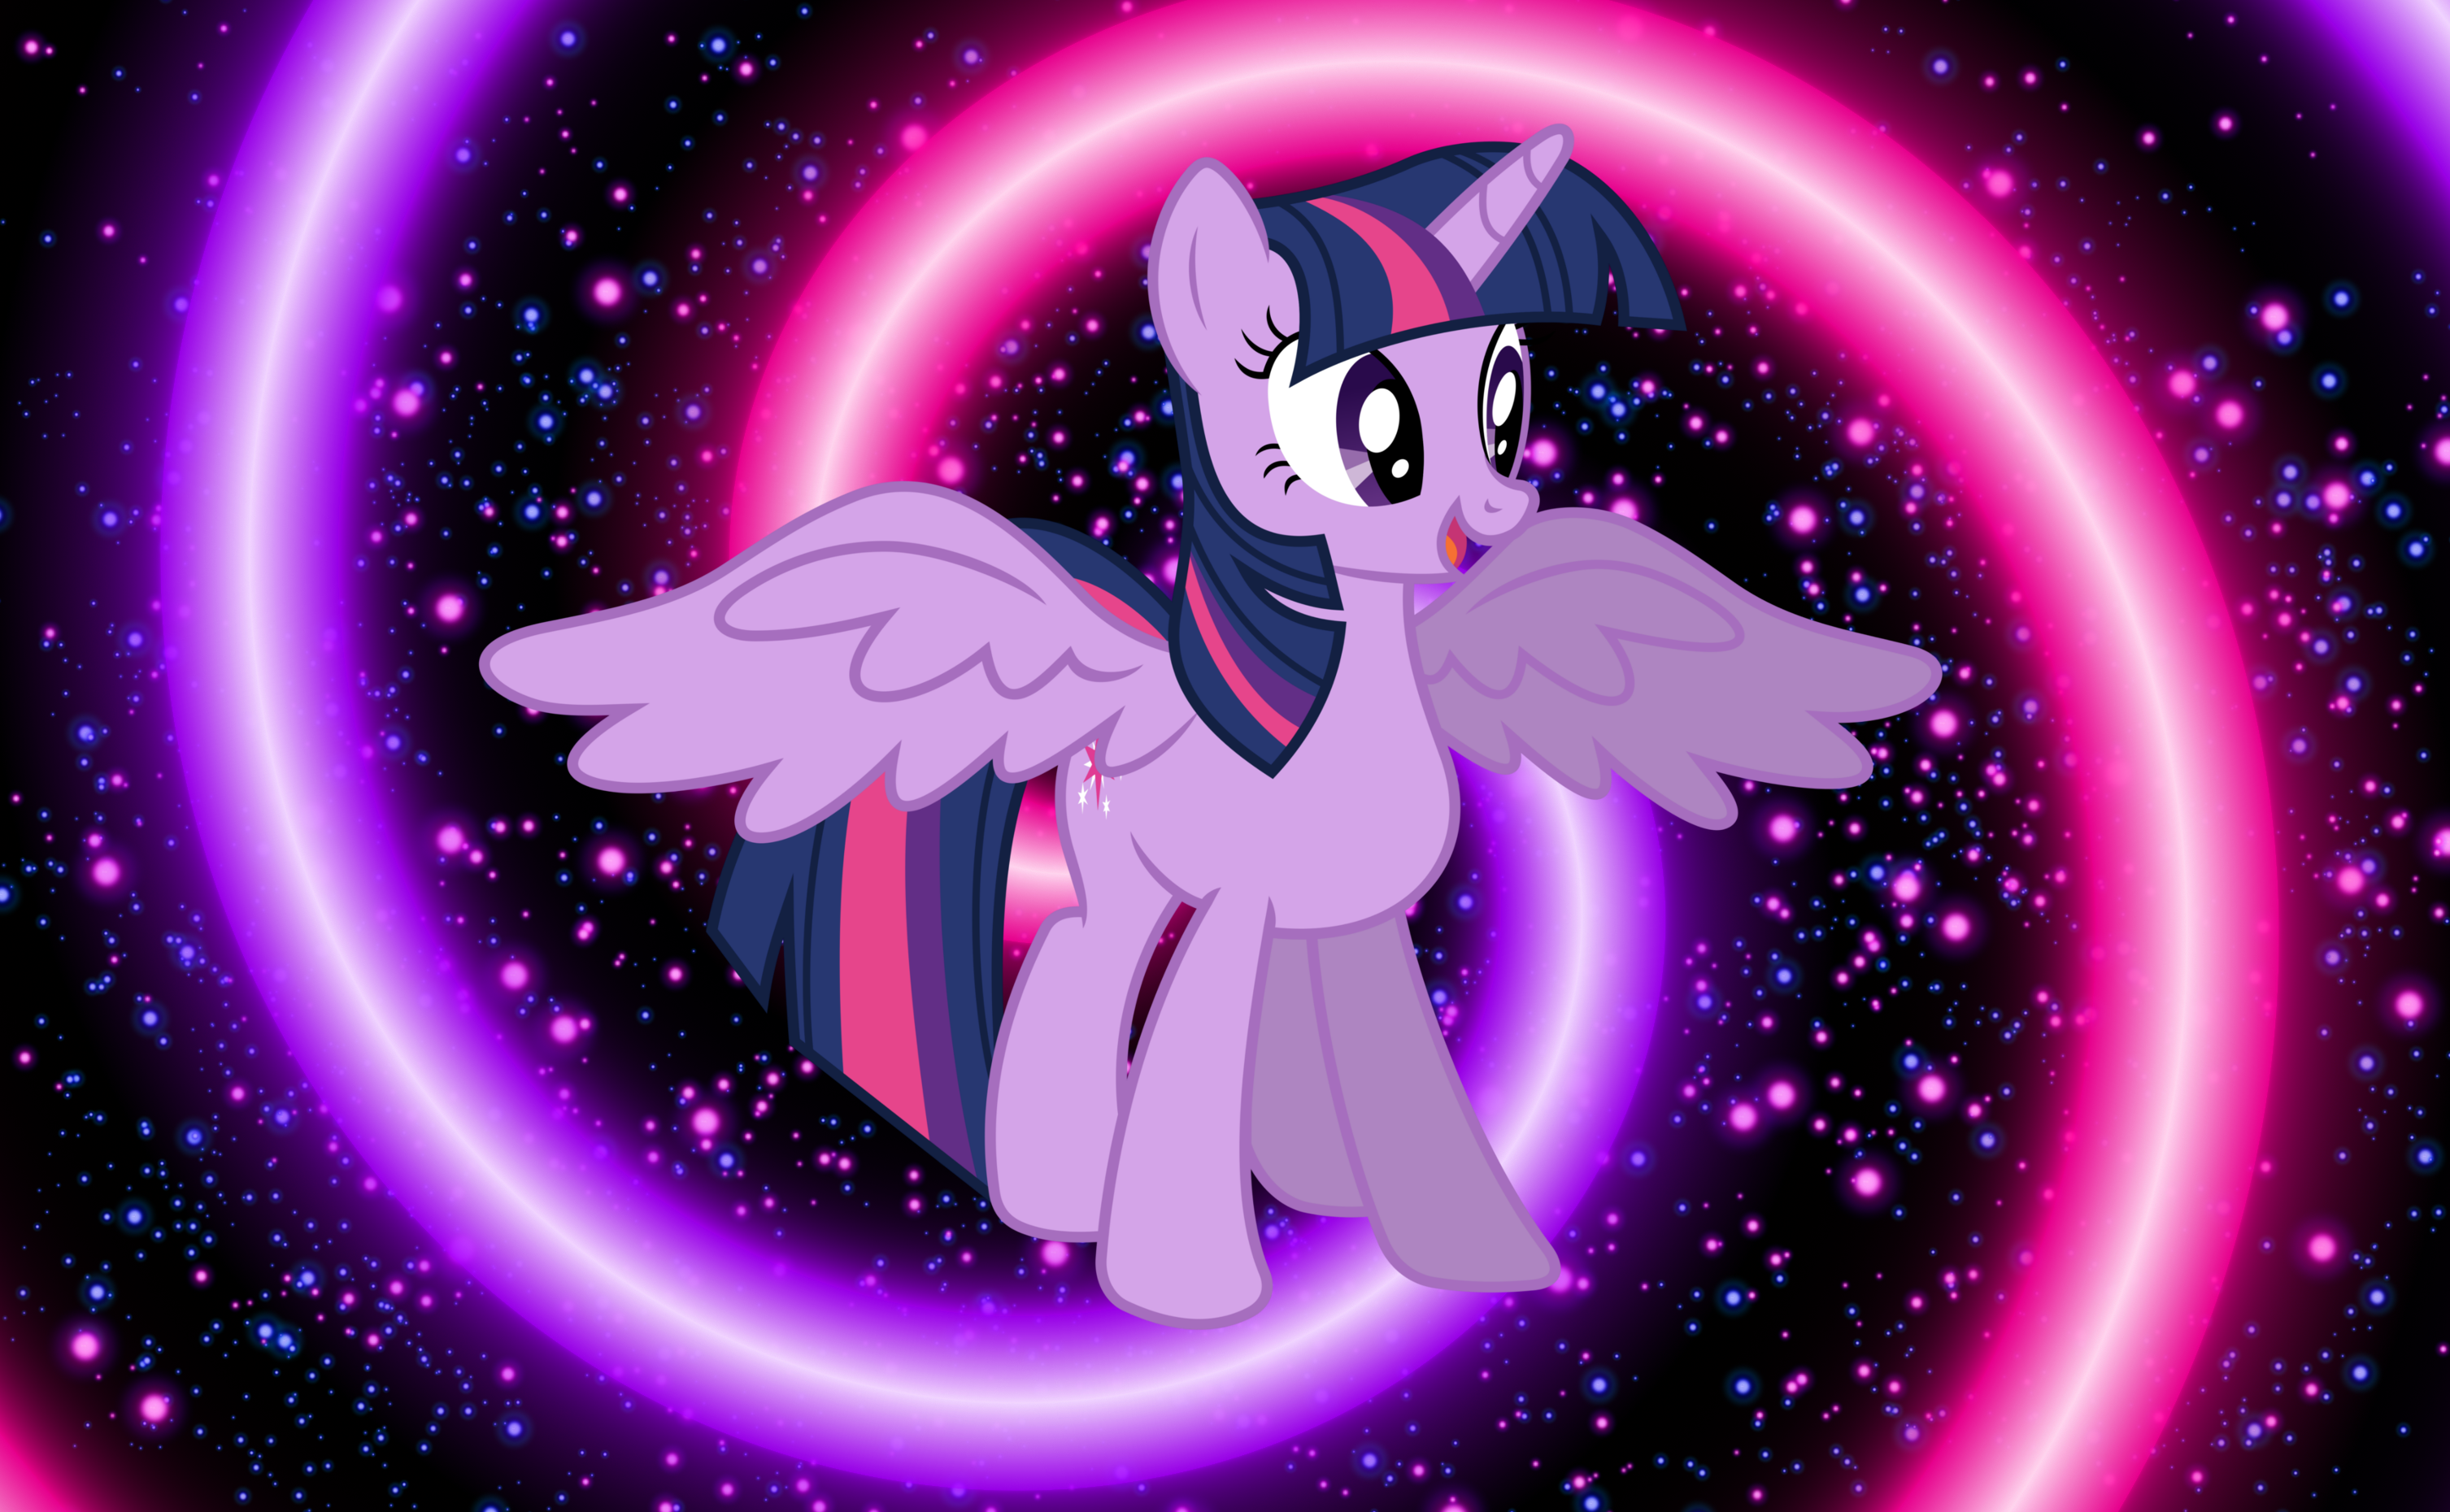 princess twilight sparkle wallpaper cool - photo #4